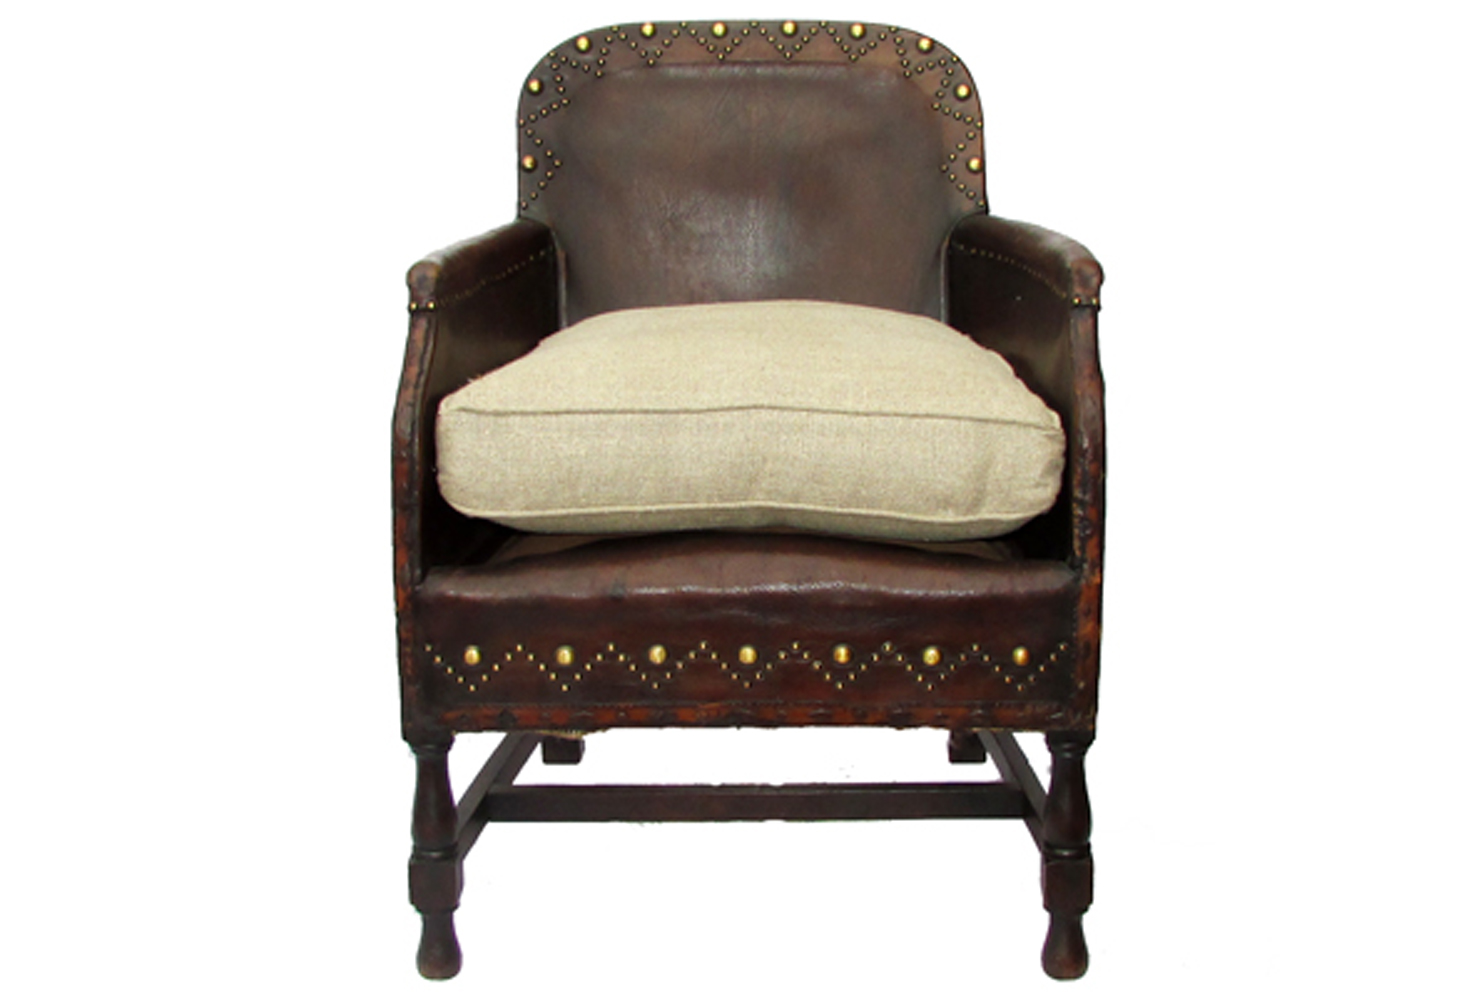 Delicieux Antique English Leather Studded Chair